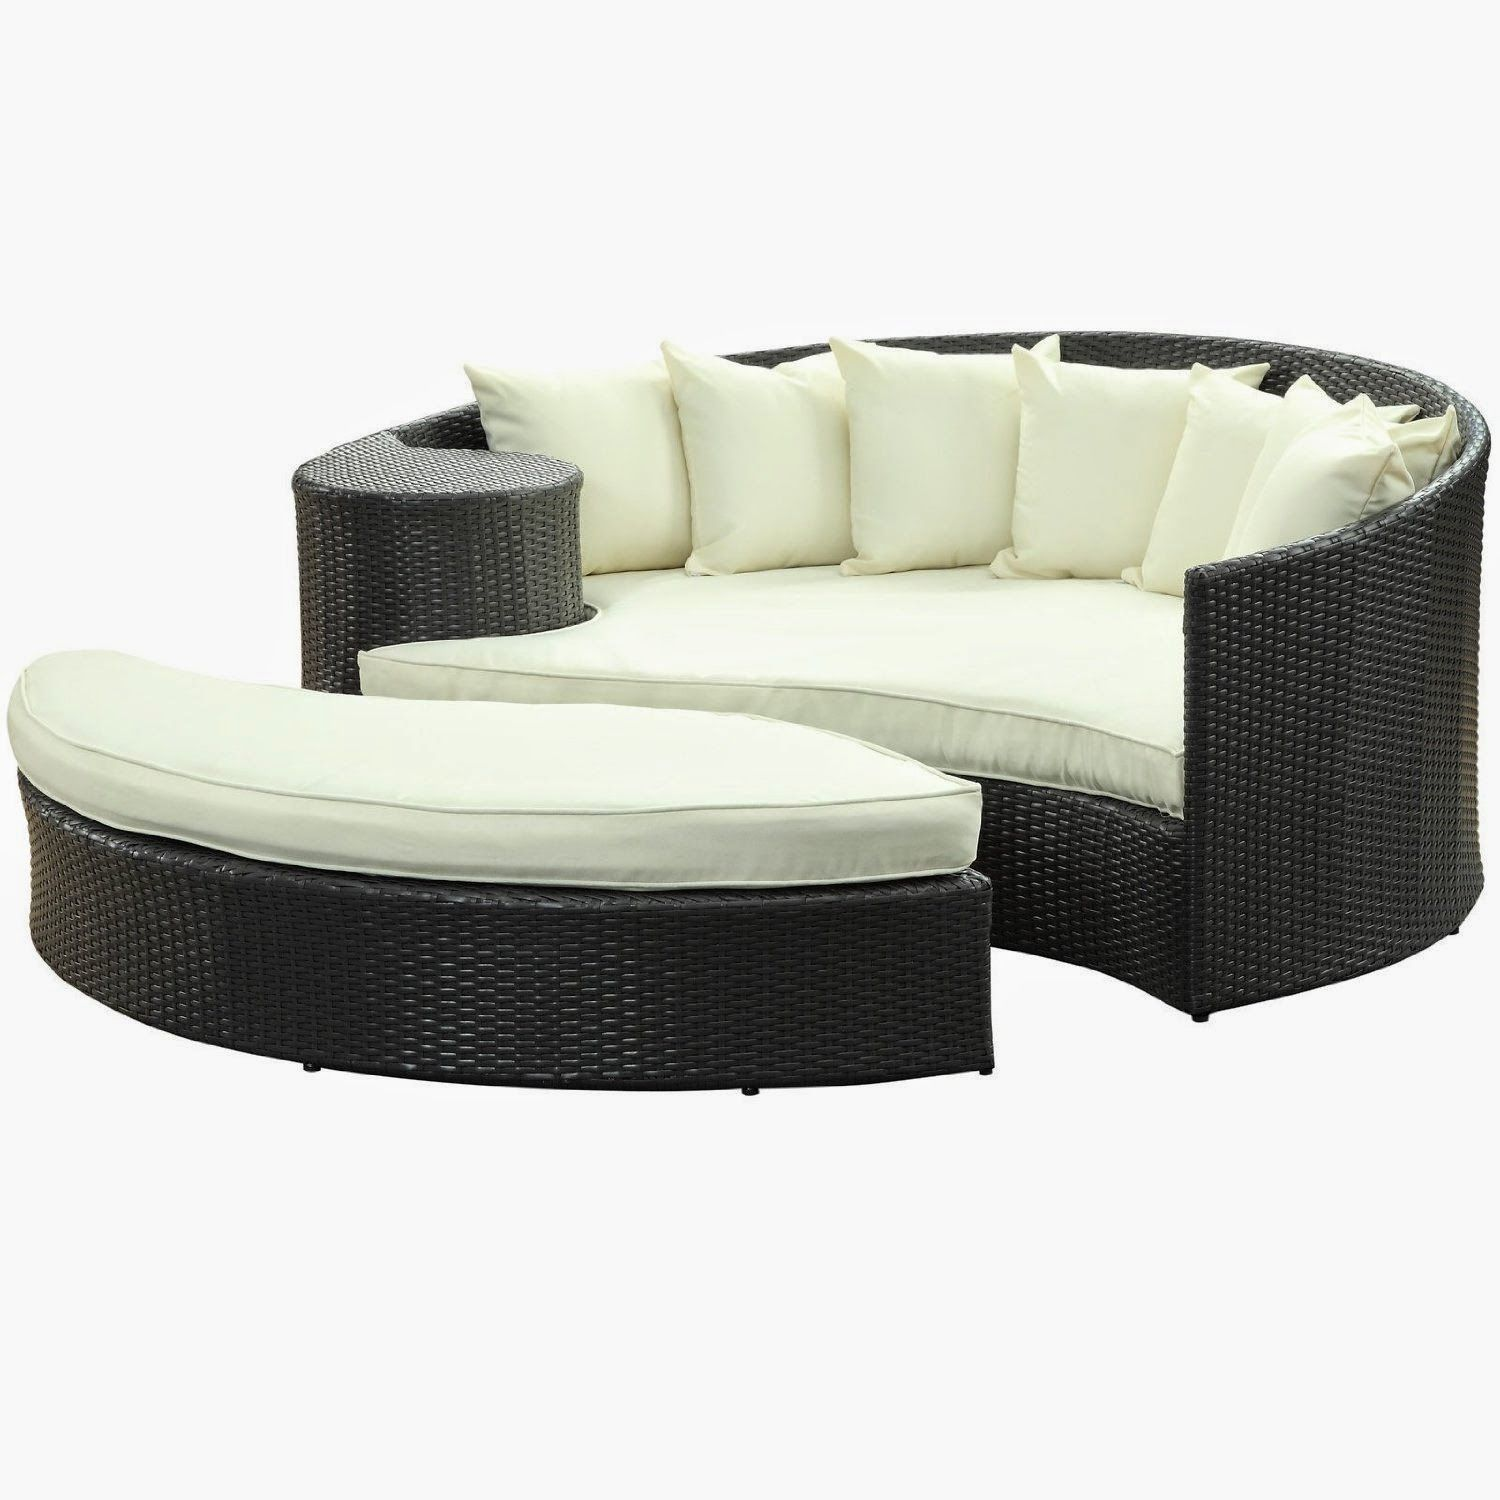 Lexmod Taiji Outdoor Wicker Patio Daybed With Ottoman In Espresso With White Cushions Outdoor Daybed Modern Outdoor Furniture Patio Daybed